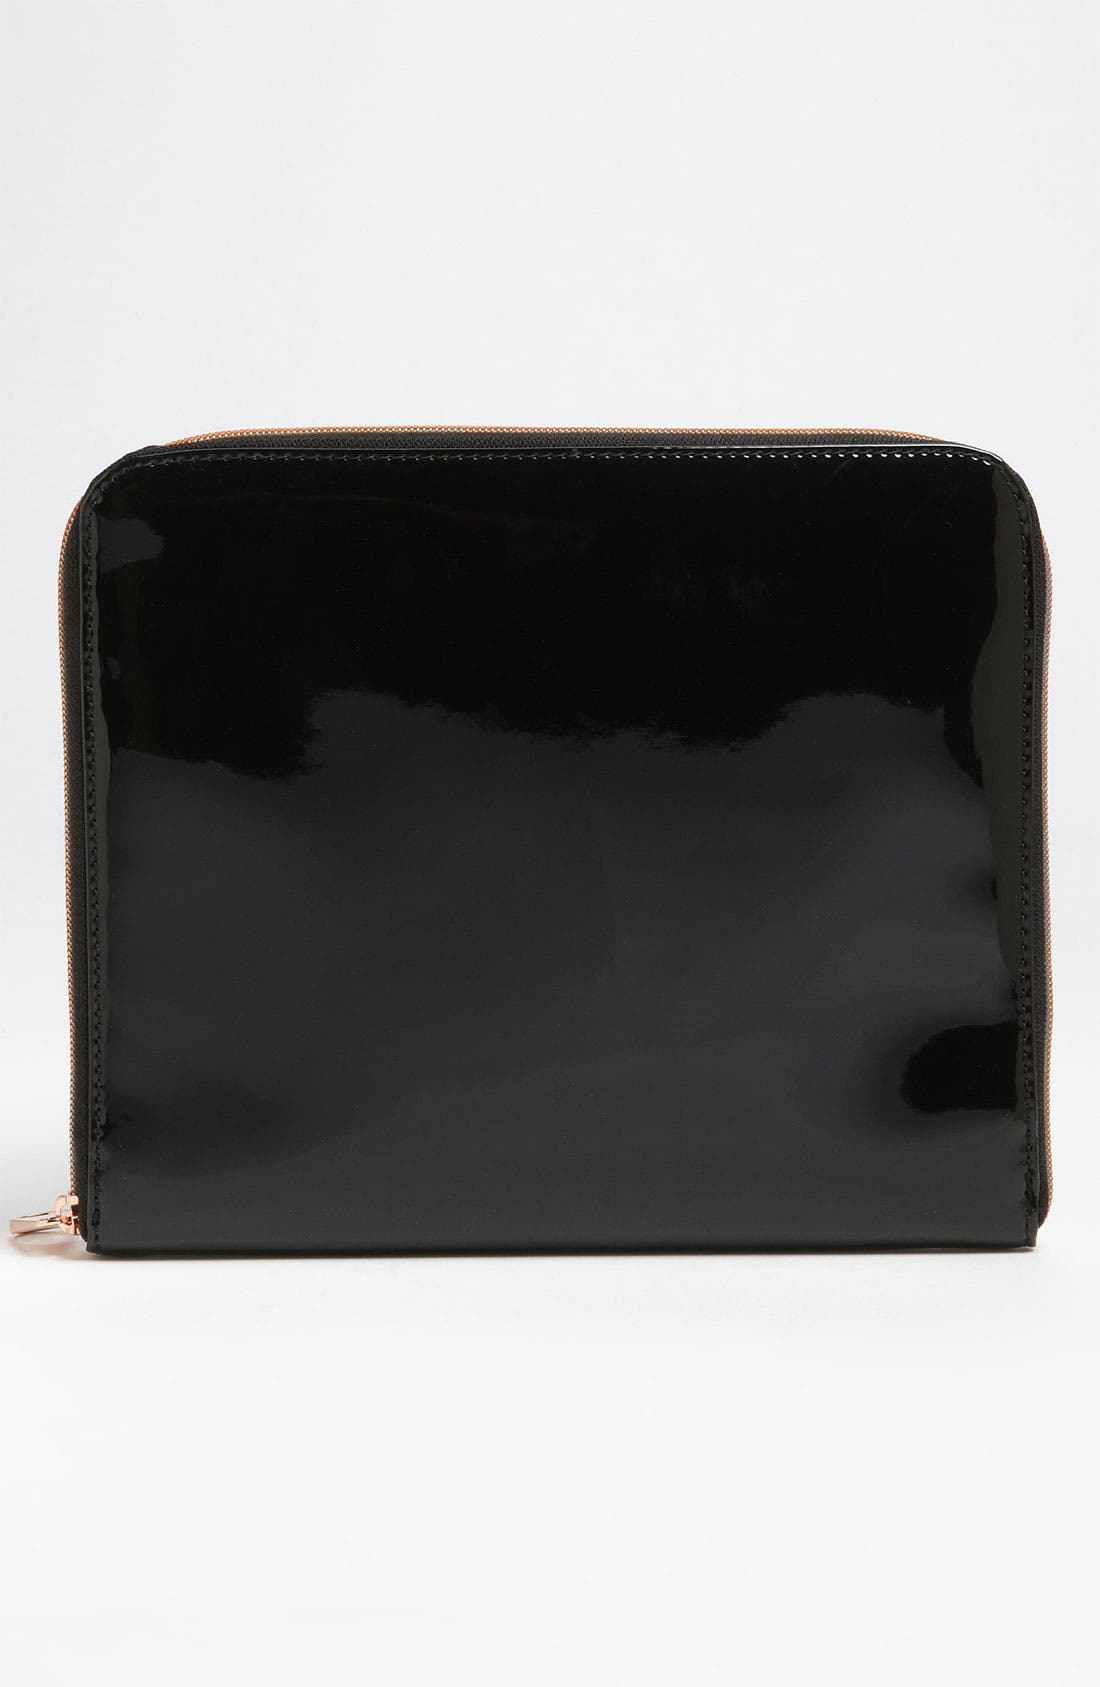 TED BAKER LONDON,                             'Bow' iPad Sleeve,                             Alternate thumbnail 2, color,                             009